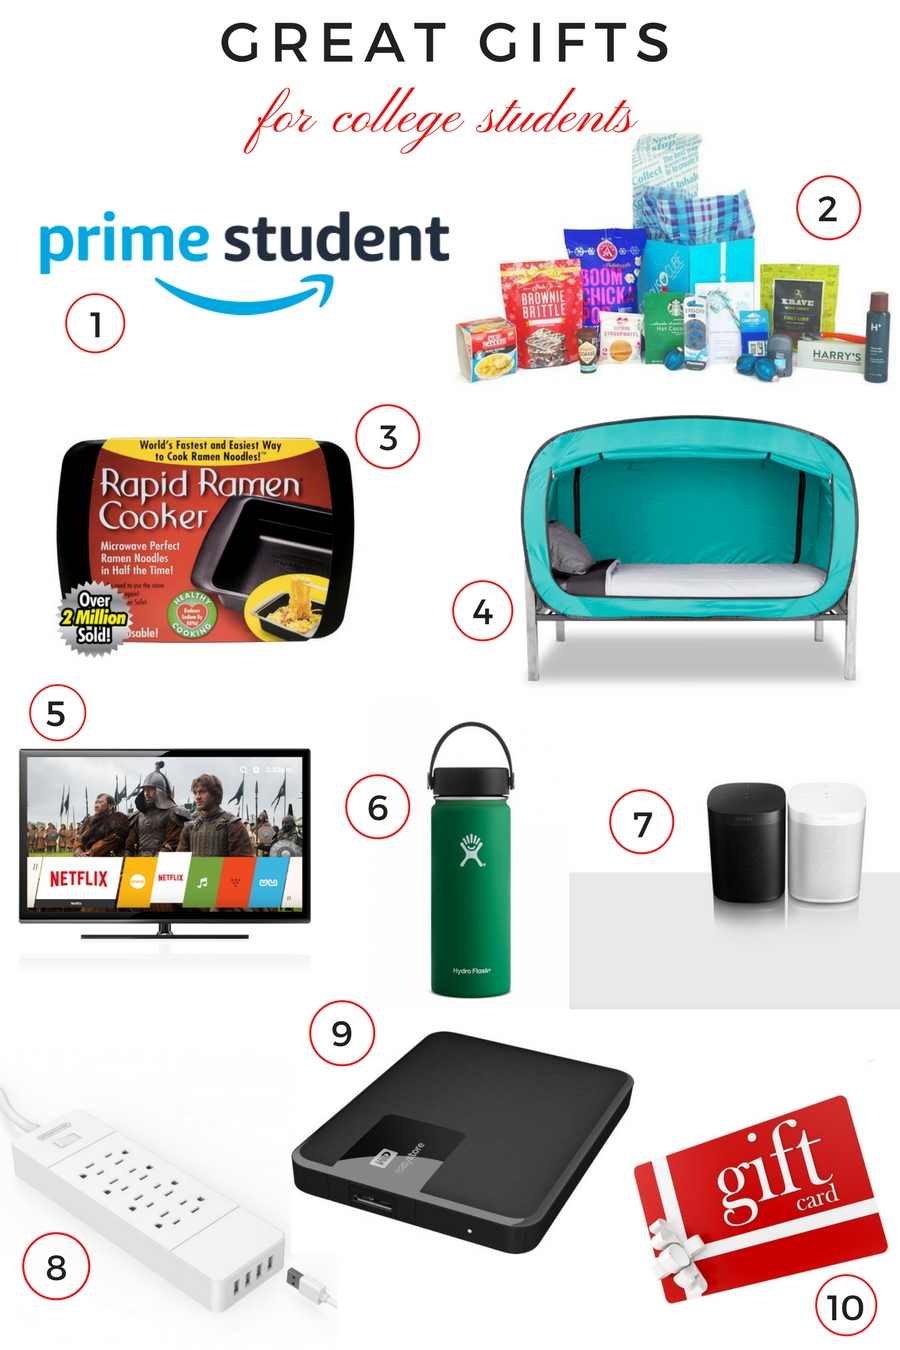 Christmas Gifts For College Students 2019.College Student Gift Ideas For Christmas The Best